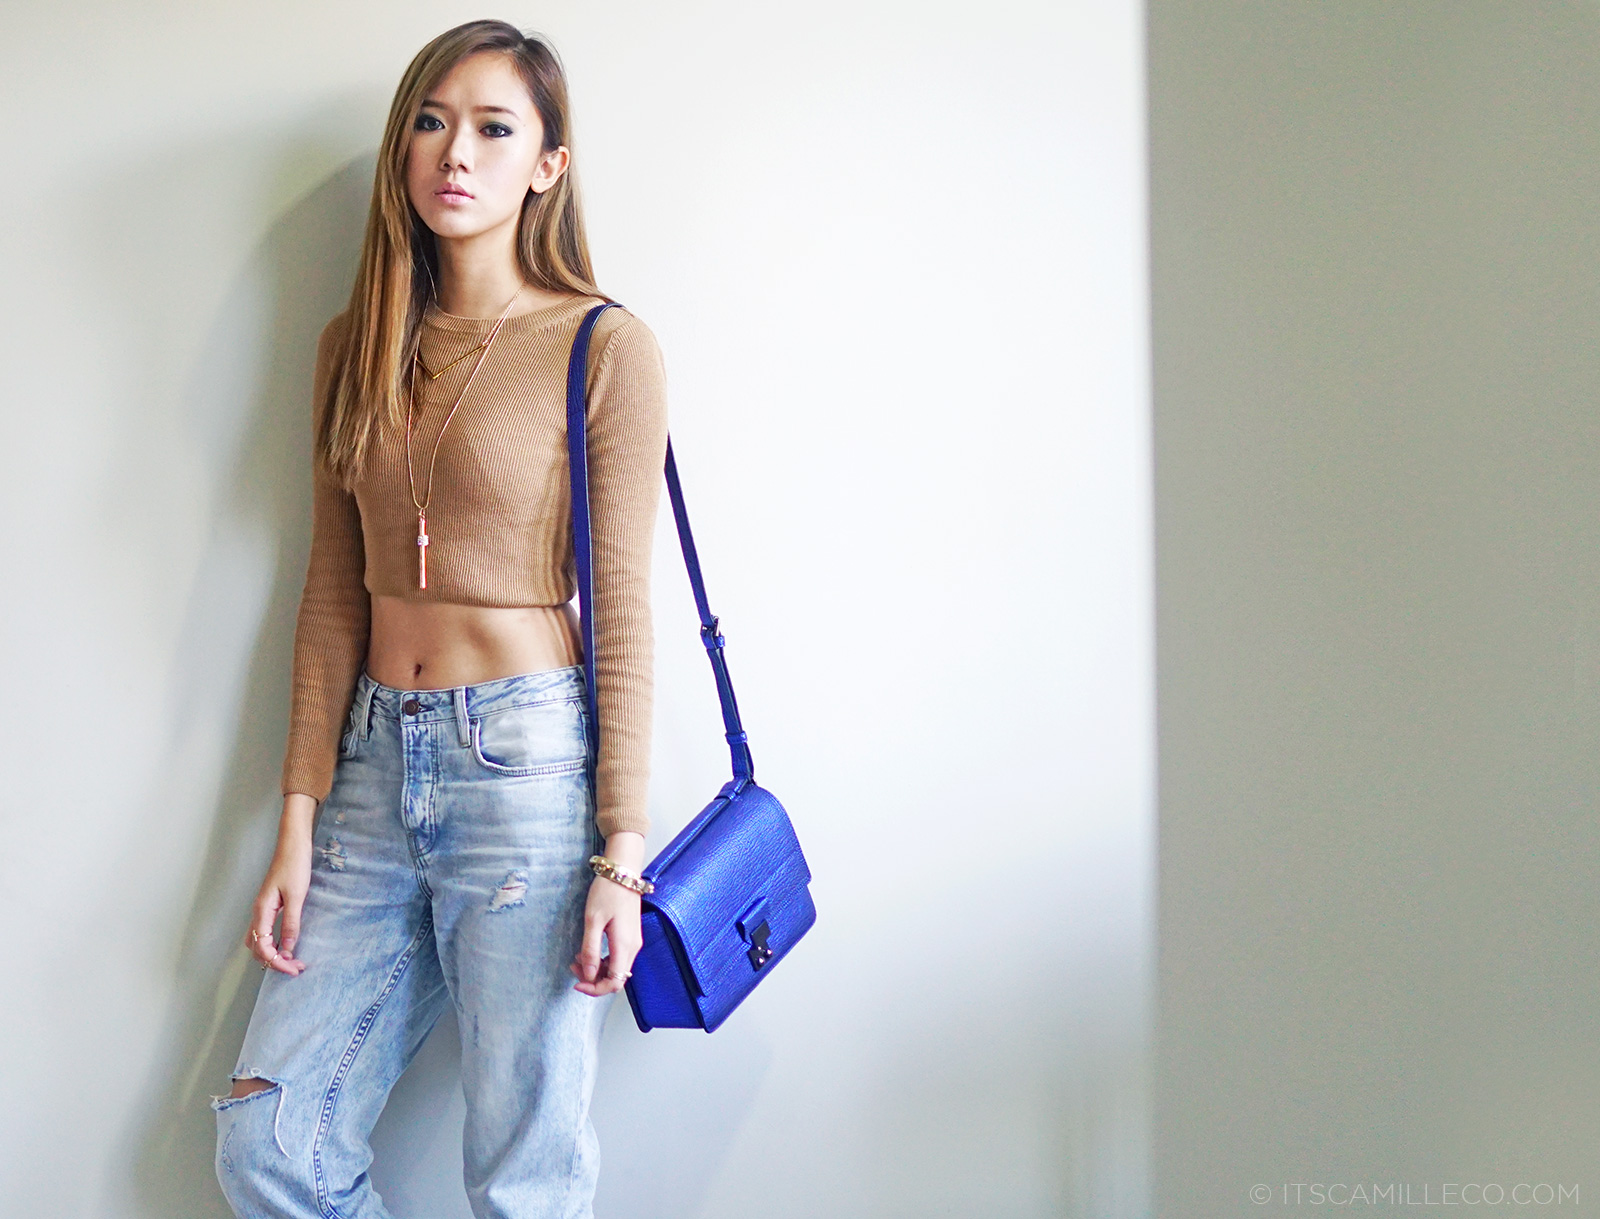 Topshop Cropped Top and Baggy Jeans, 3.1 Phillip Lim Pashli Mini, Native Boots | www.itscamilleco.com